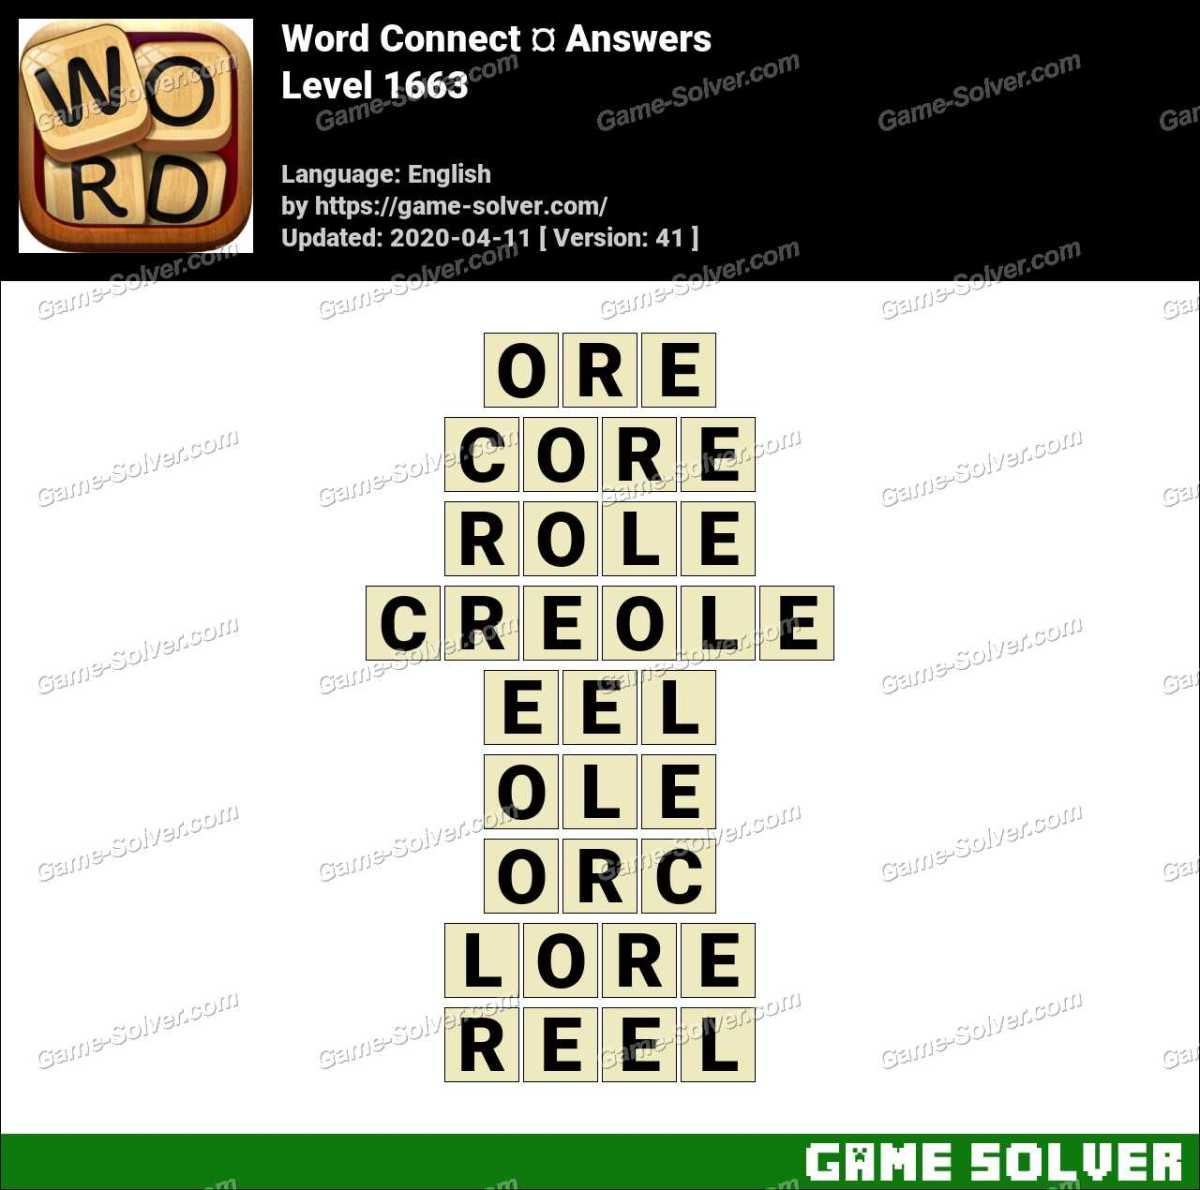 Word Connect Level 1663 Answers